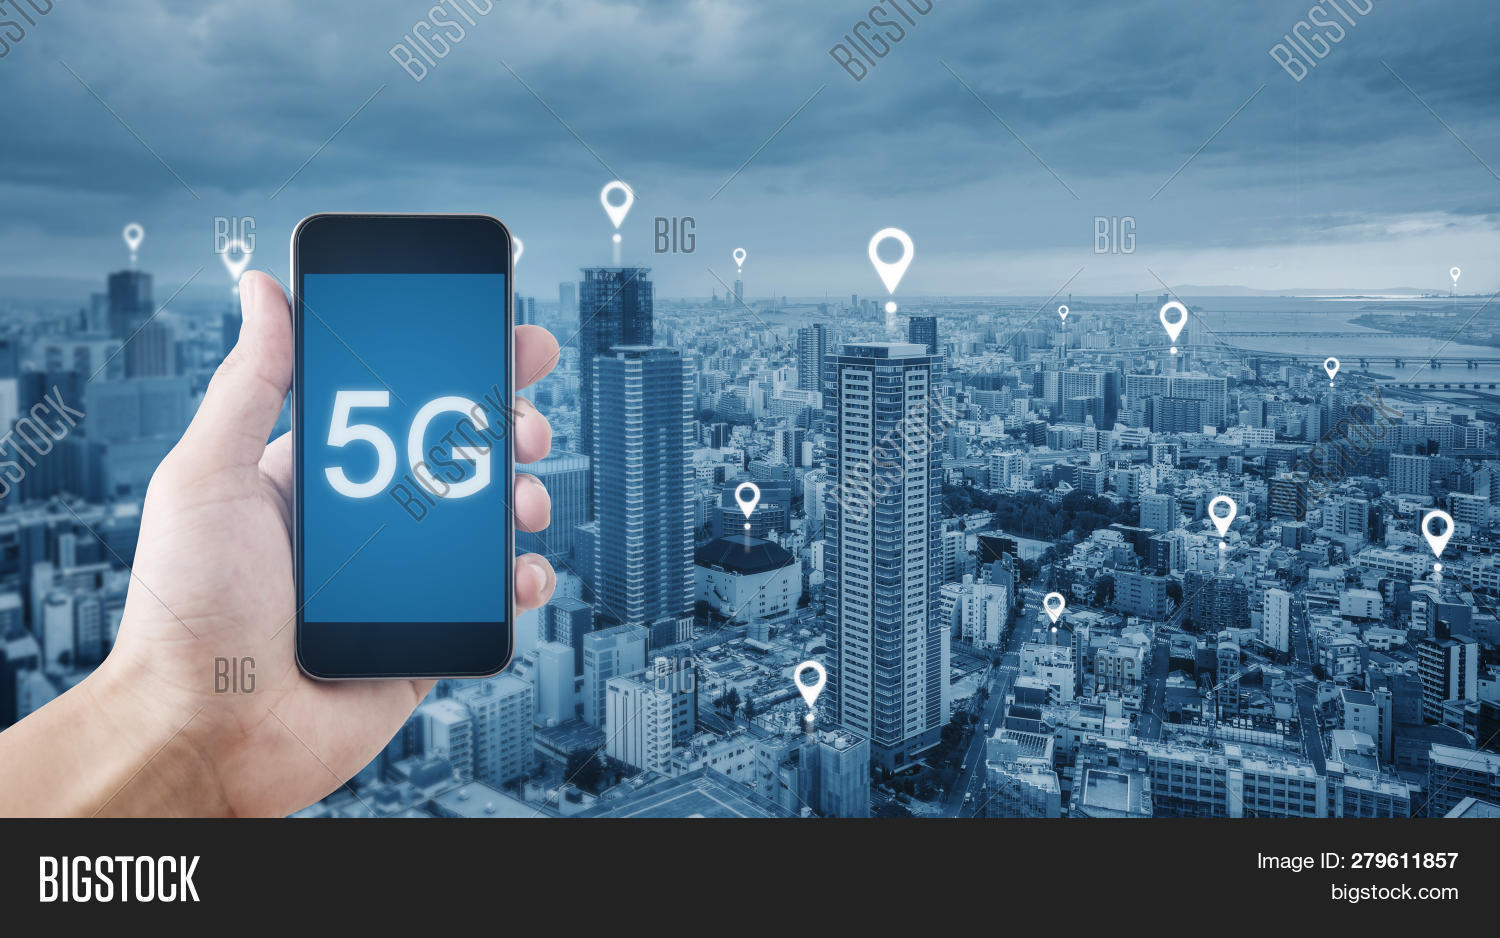 4g,5g,background,block,blockchain,blue,broadcast,business,cellphone,cellular,chain,city,cloud,communication,concept,connect,connected,connection,data,development,device,digital,download,future,futuristic,global,gps,hand,highspeed,innovation,internet,location,mobile,modern,navigation,network,networking,new,online,phone,skyscraper,smart,smartphone,technology,telecommunication,using,wifi,wireless,worldwide